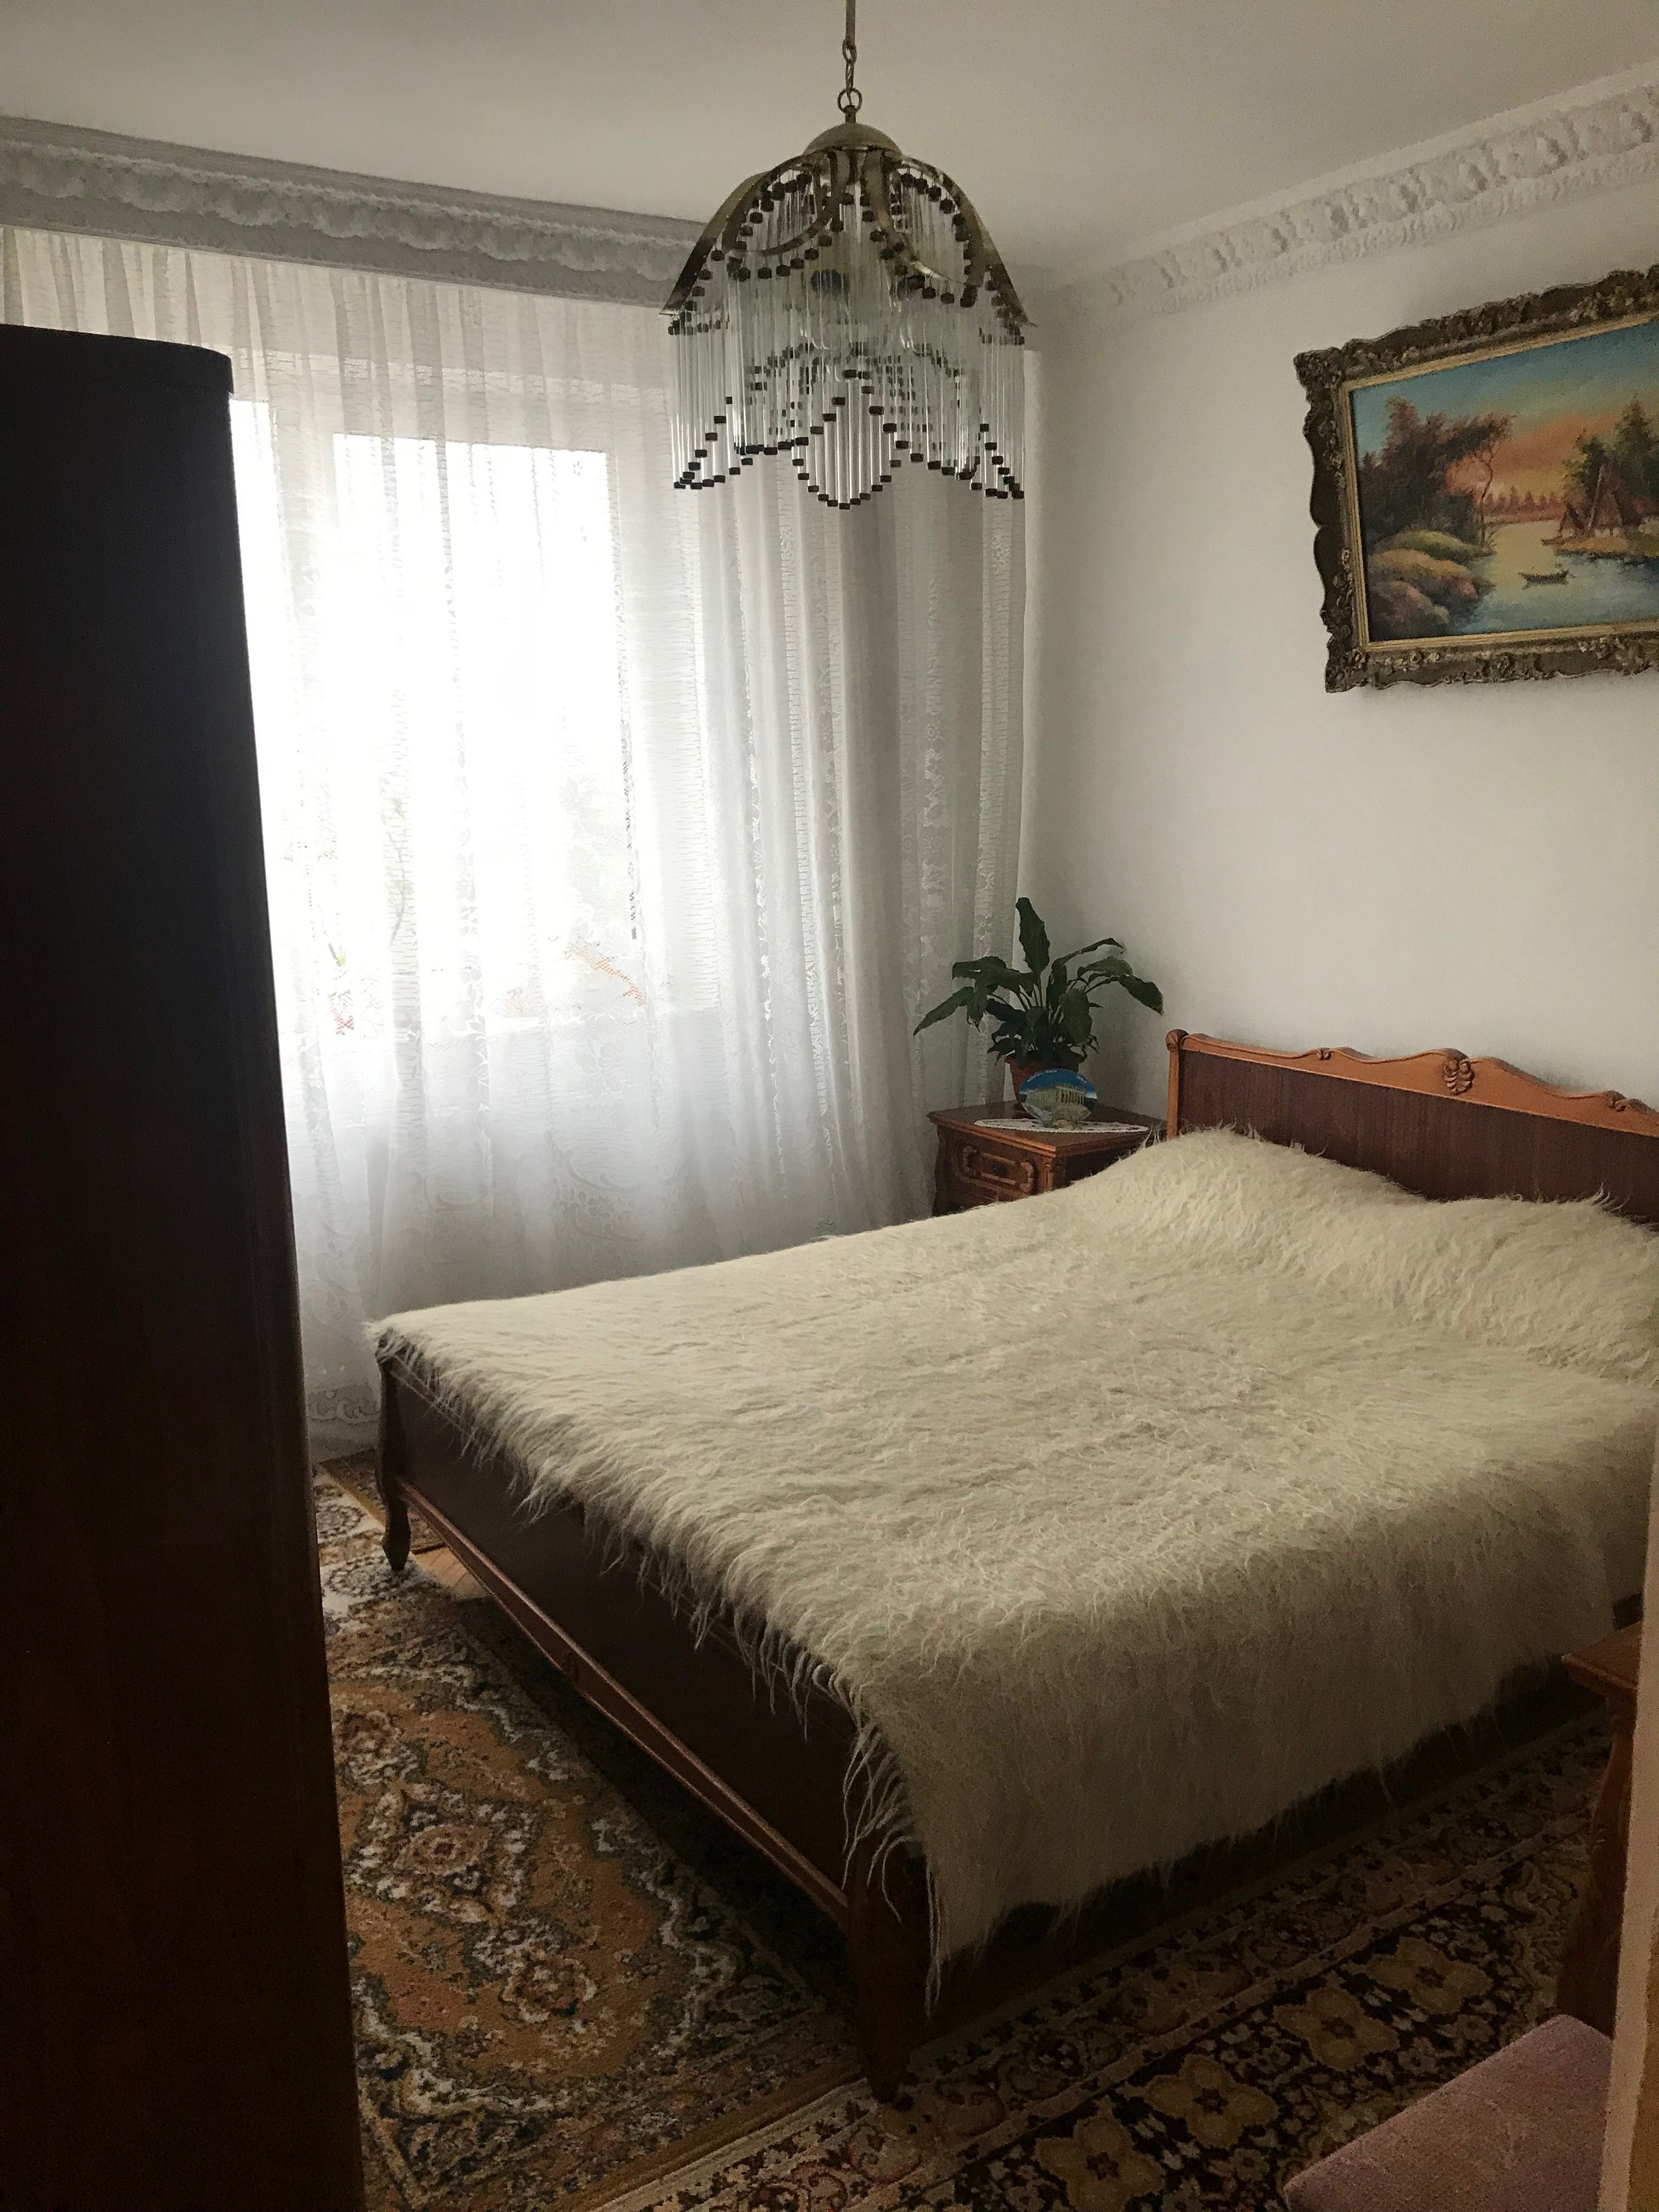 Vanzare Apartament 4 camere - TOMIS NORD, Constanta